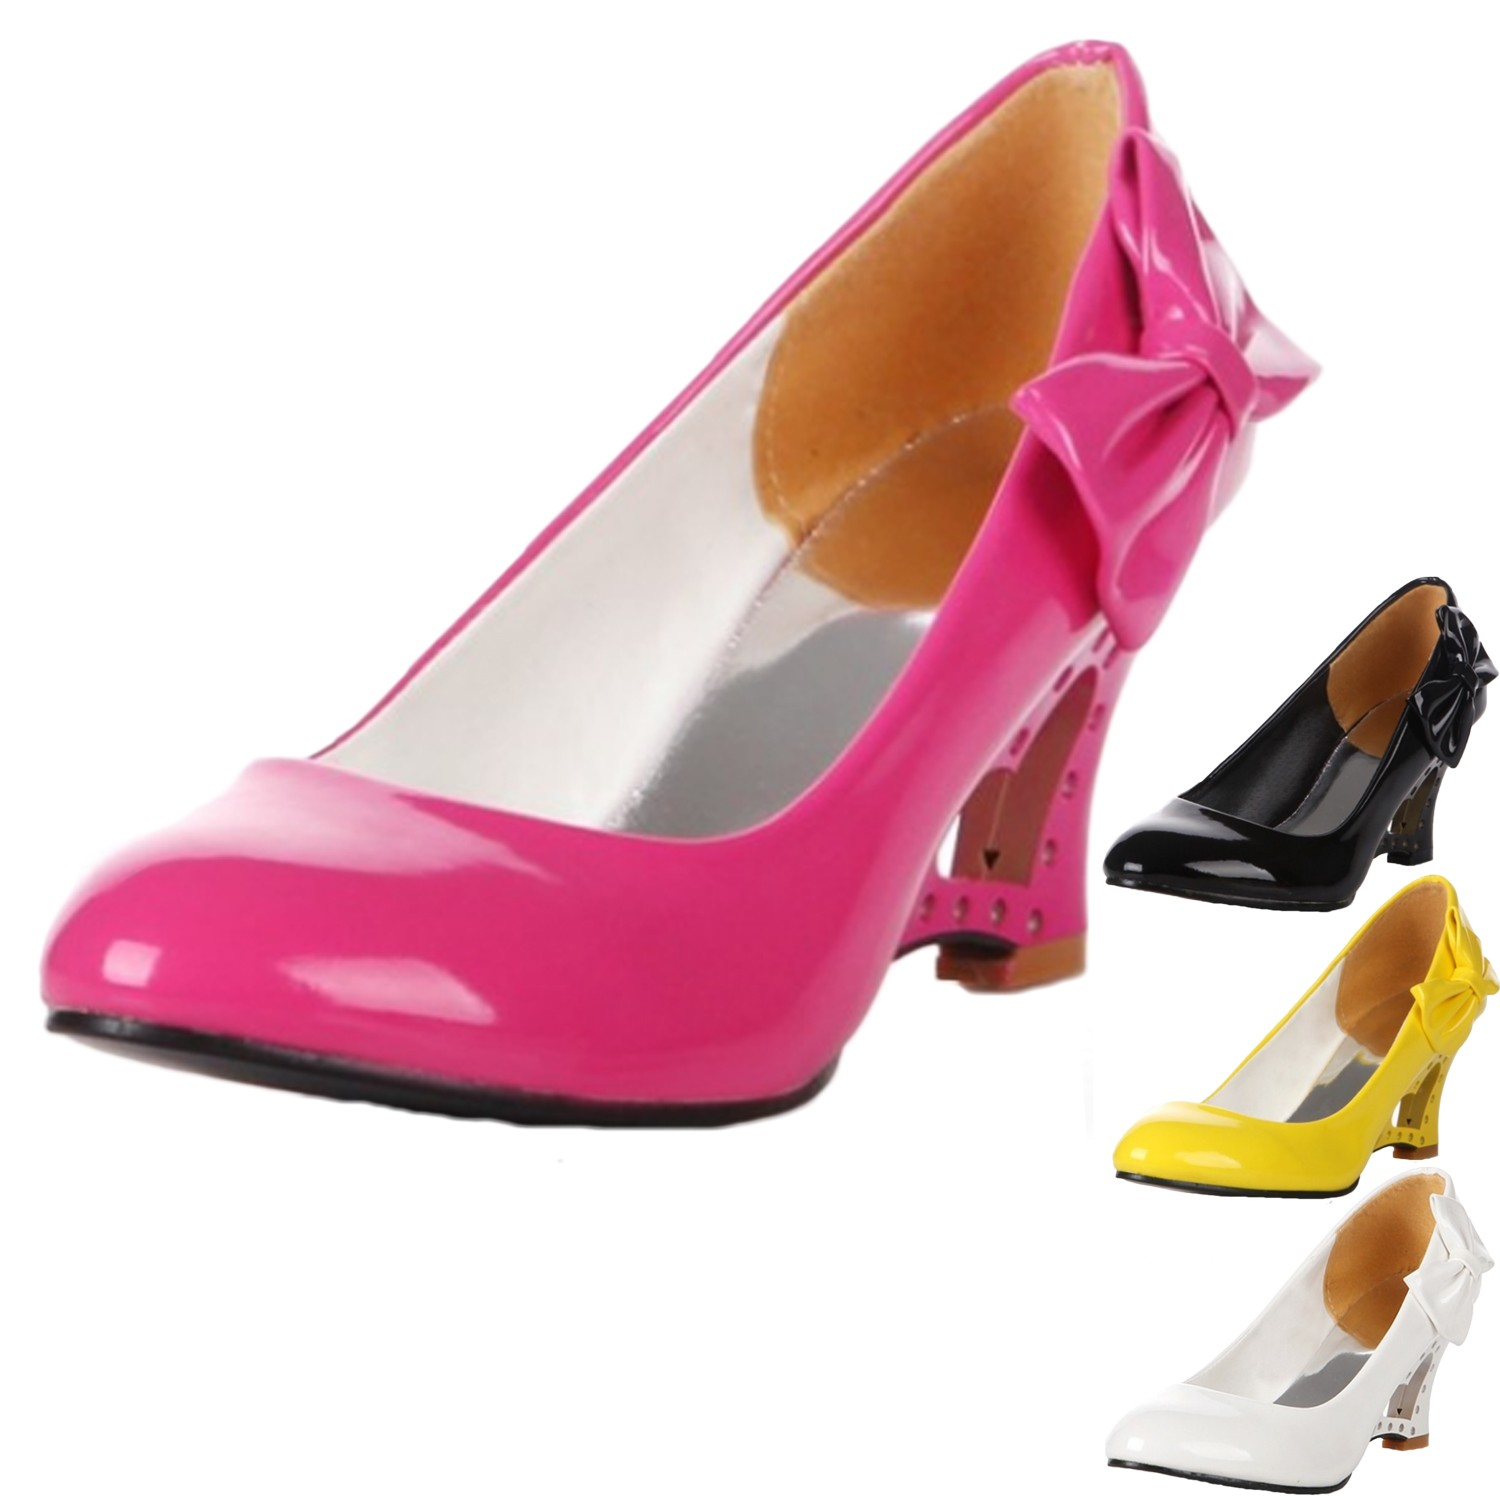 sommer damen schuhe high heels pumps wedges sexy keilabsatz partyschuhe shoes ebay. Black Bedroom Furniture Sets. Home Design Ideas